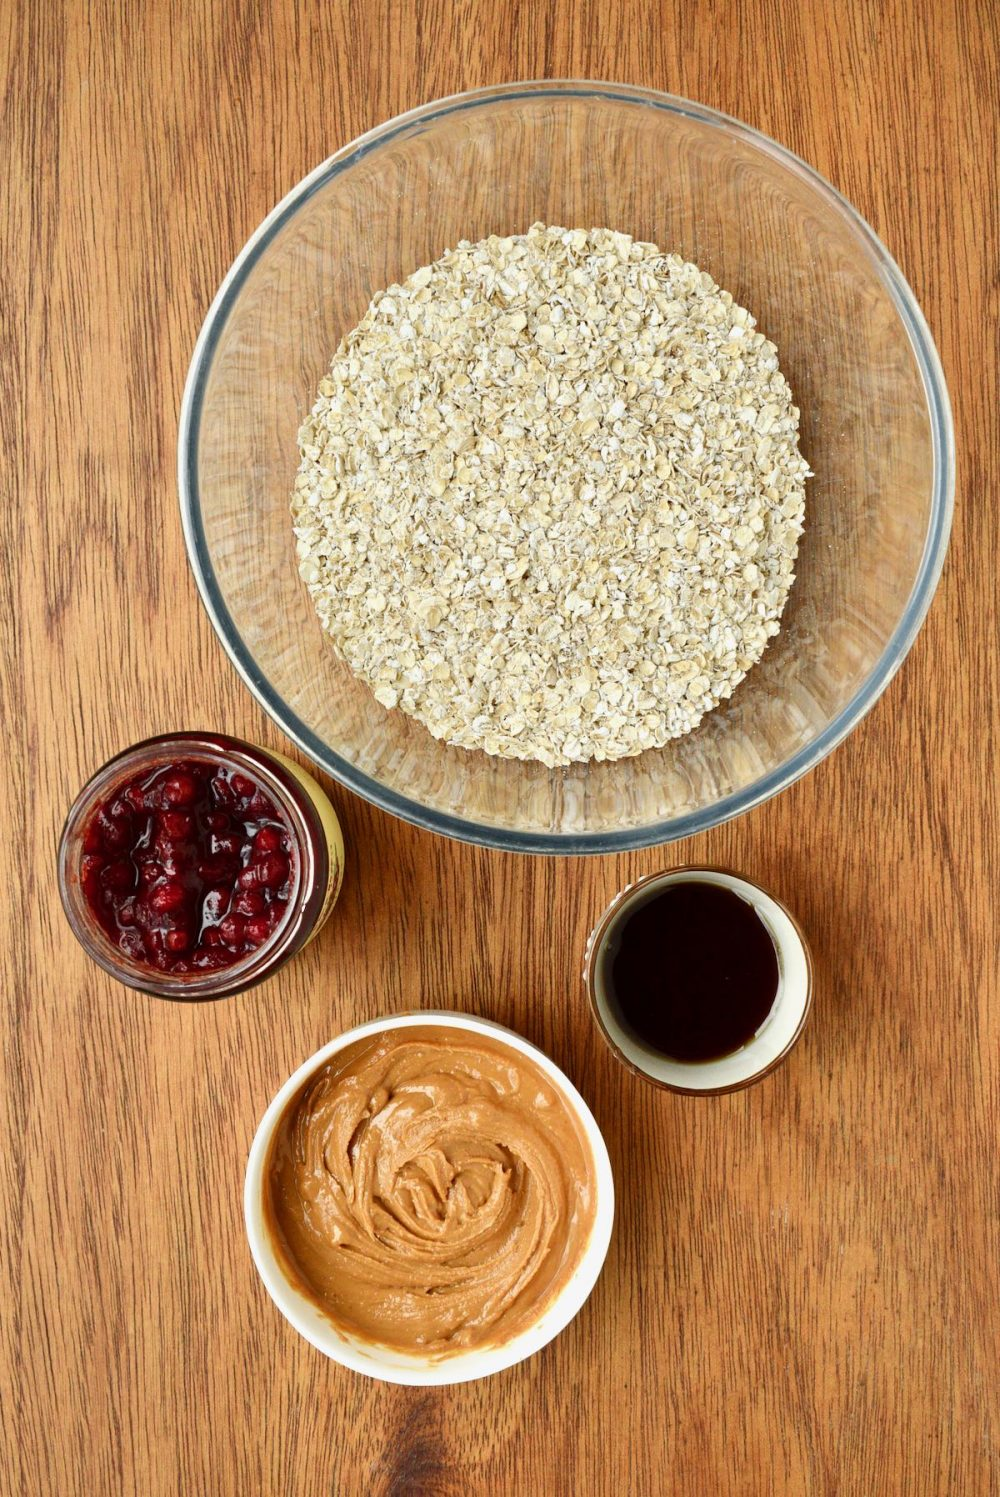 Ingredients on a wooden board - a bowl of oats, jar of jam, maple syrup and smooth peanut butter